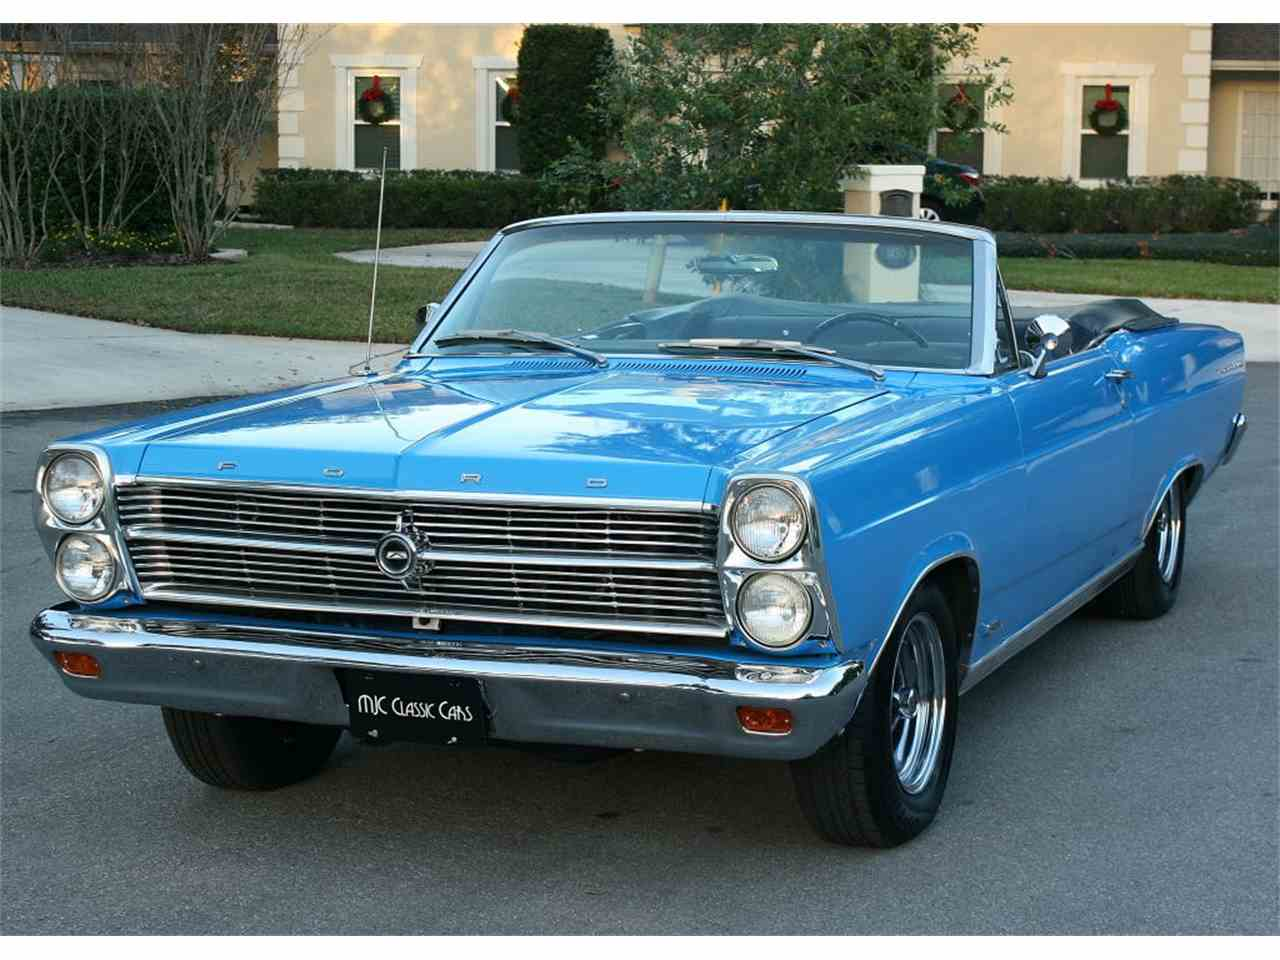 Picture Of Classic 1966 Ford Fairlane Offered By MJC Cars